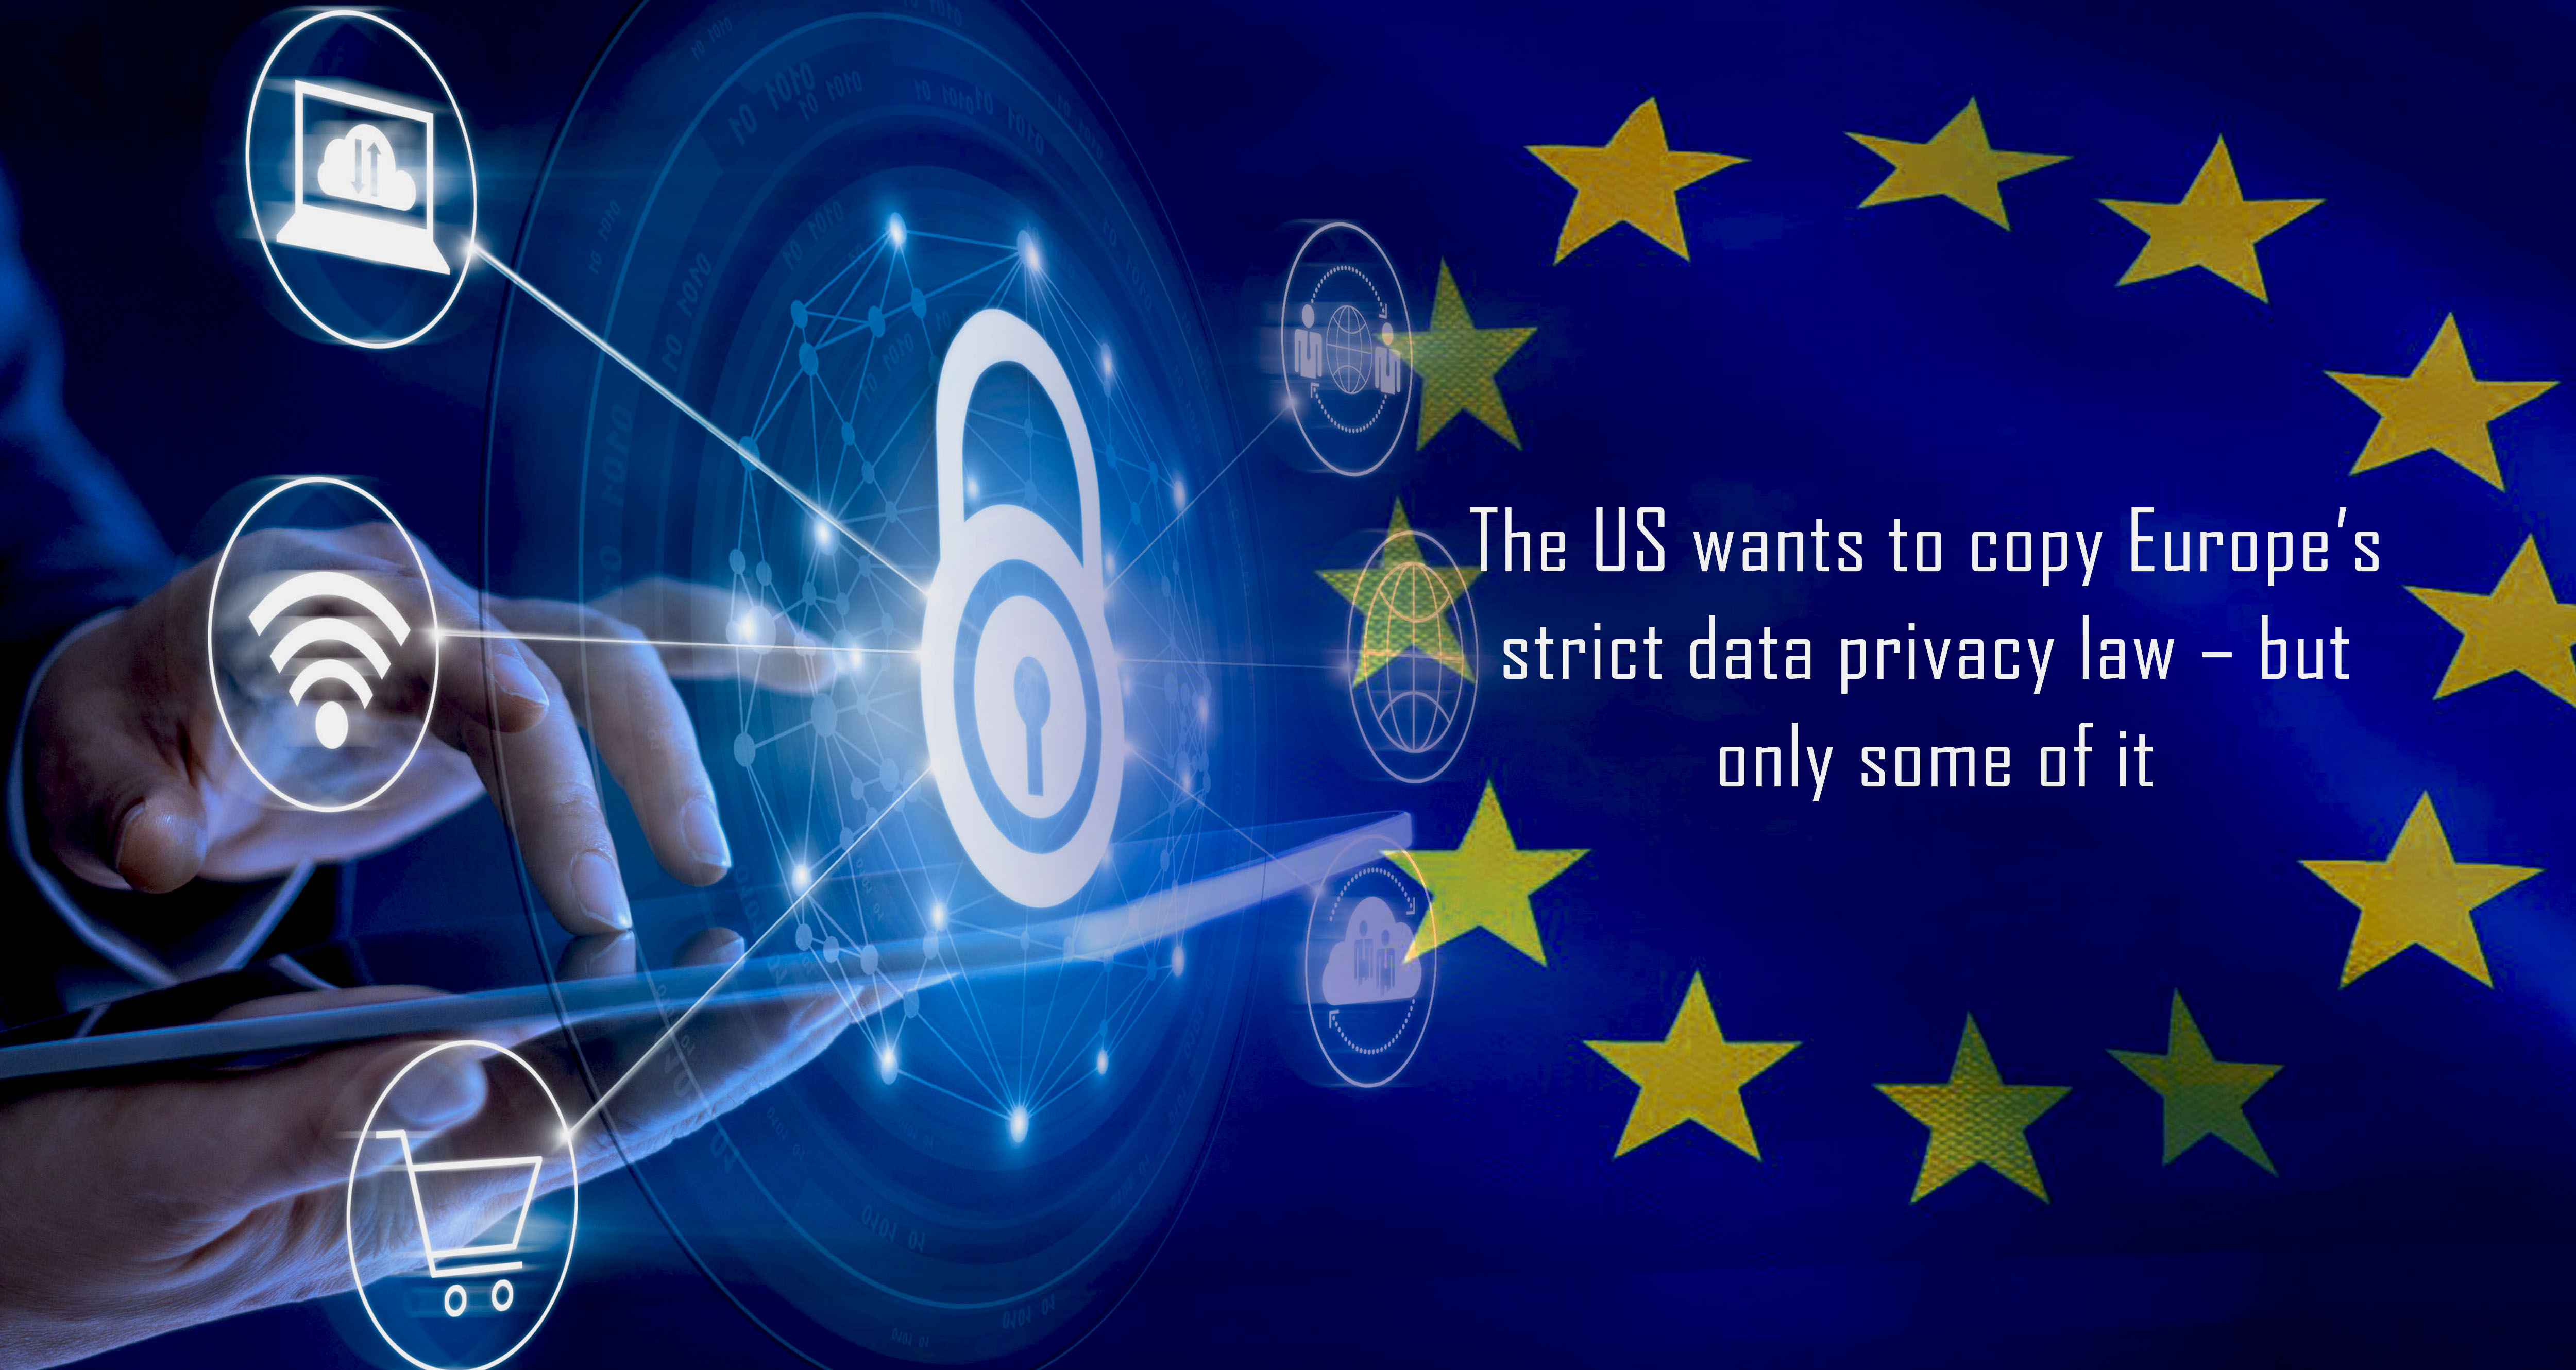 The United States Wishes to Copy Strict Data Privacy Law of Europe